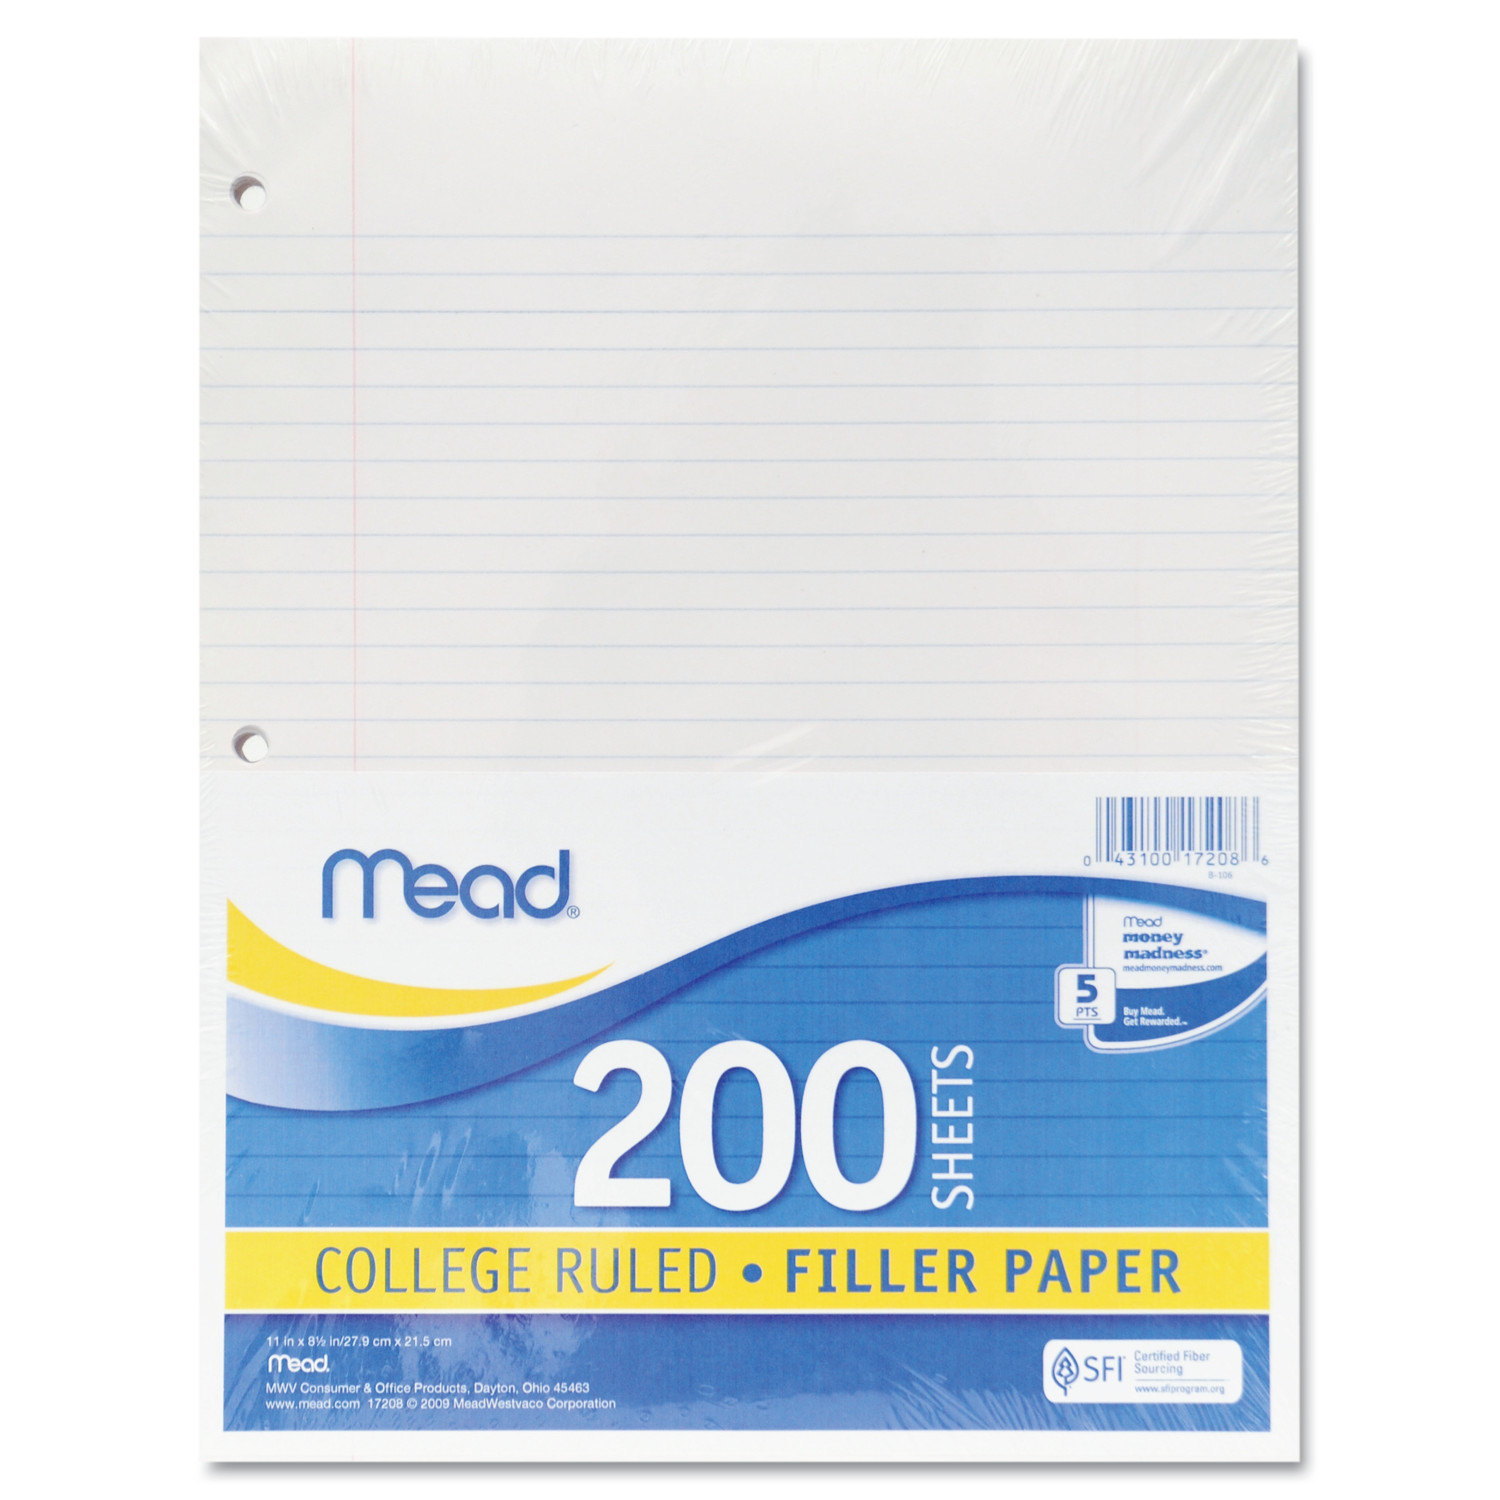 Mead Filler Paper, 15lb, College Rule, 11 x 8 1/2, White, 200 Sheets -MEA17208